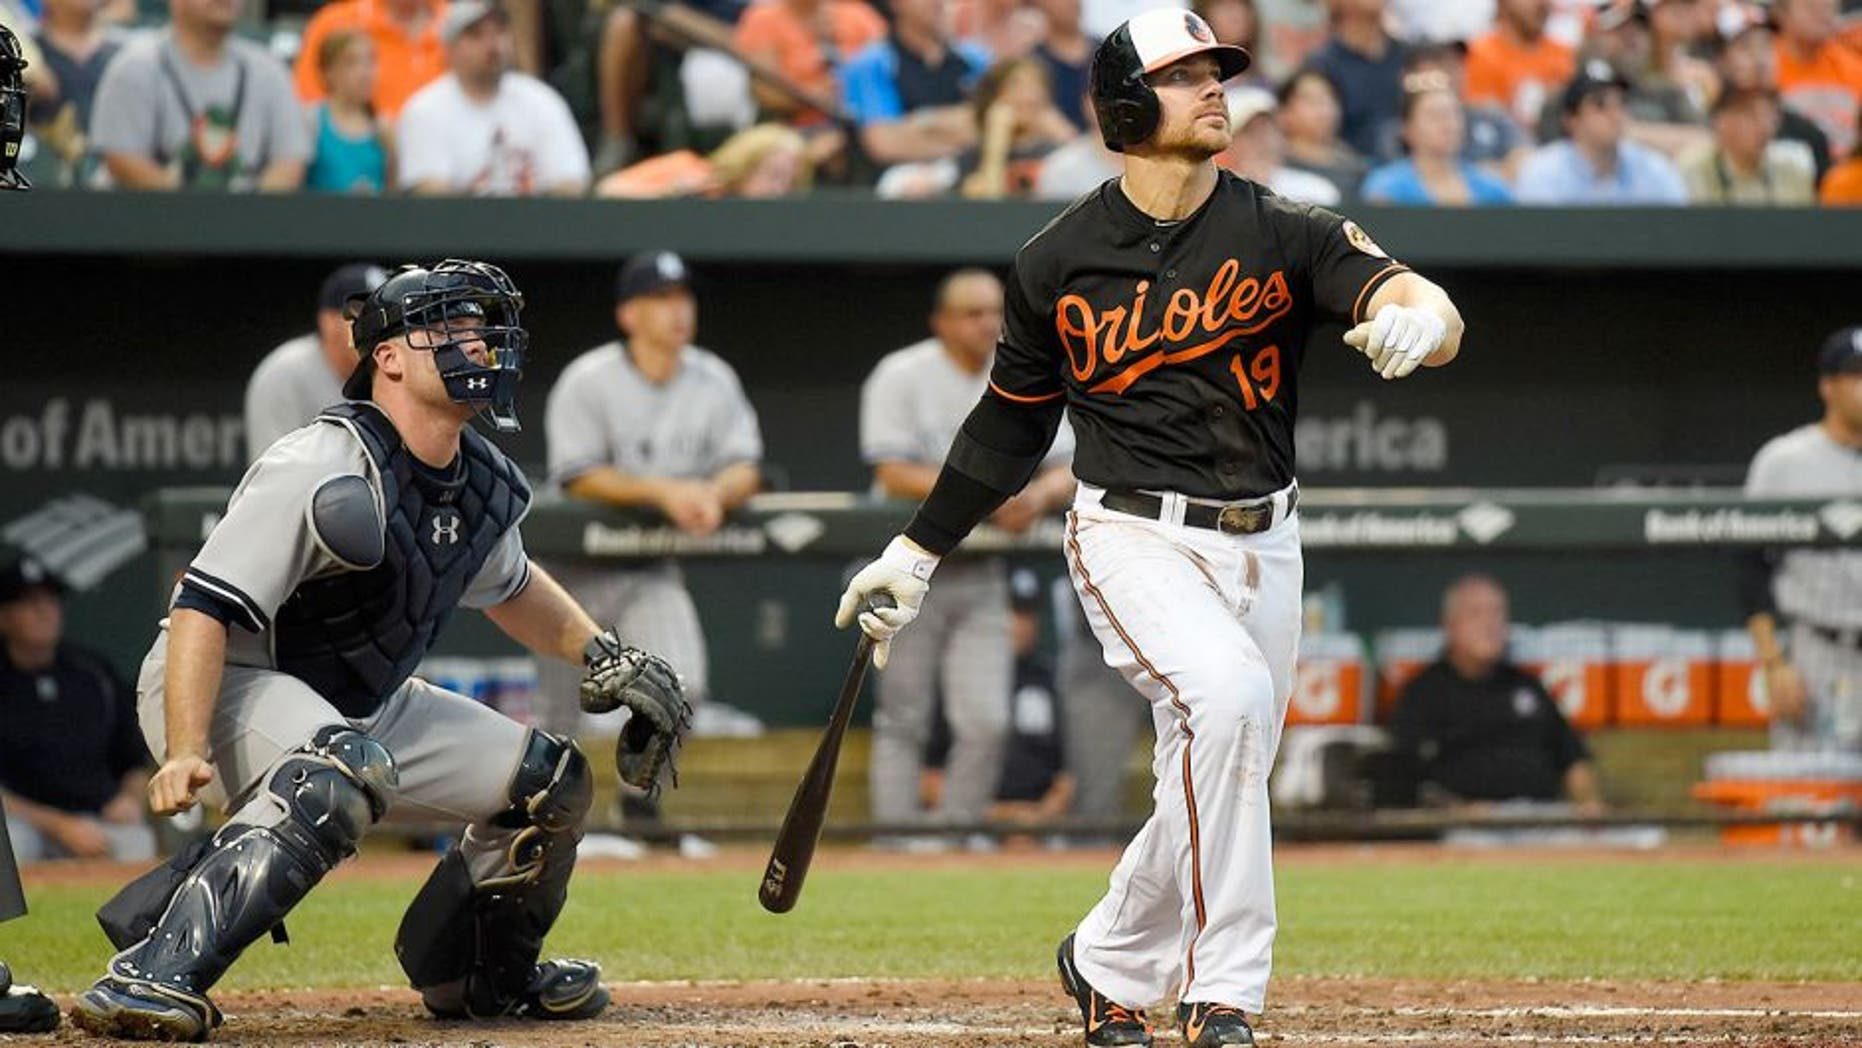 Jun 12, 2015; Baltimore, MD, USA; Baltimore Orioles first baseman Chris Davis (19) hits a three run home run during the third inning against the New York Yankees at Oriole Park at Camden Yards. Mandatory Credit: Tommy Gilligan-USA TODAY Sports